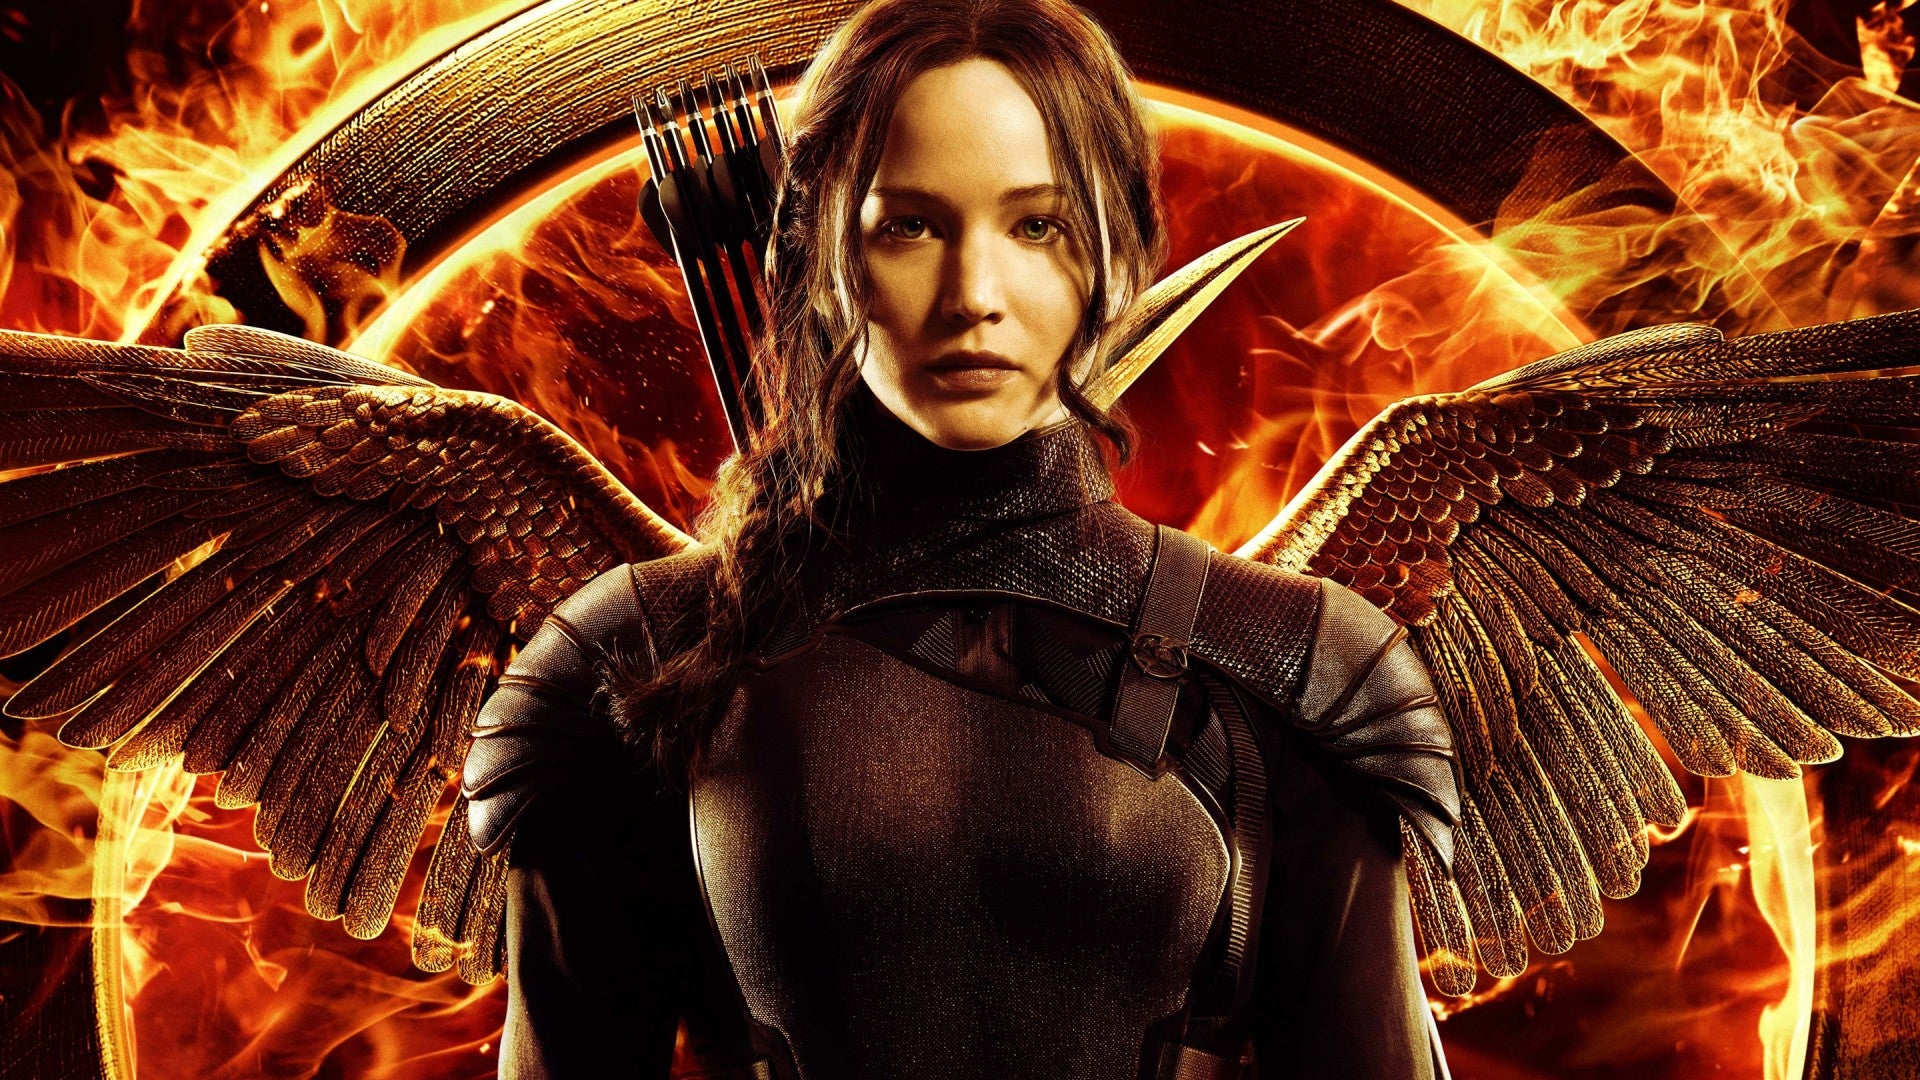 Jennifer-Lawrence-in-Hunger-Games-HD-Wide-Wallpaper-1920x1080